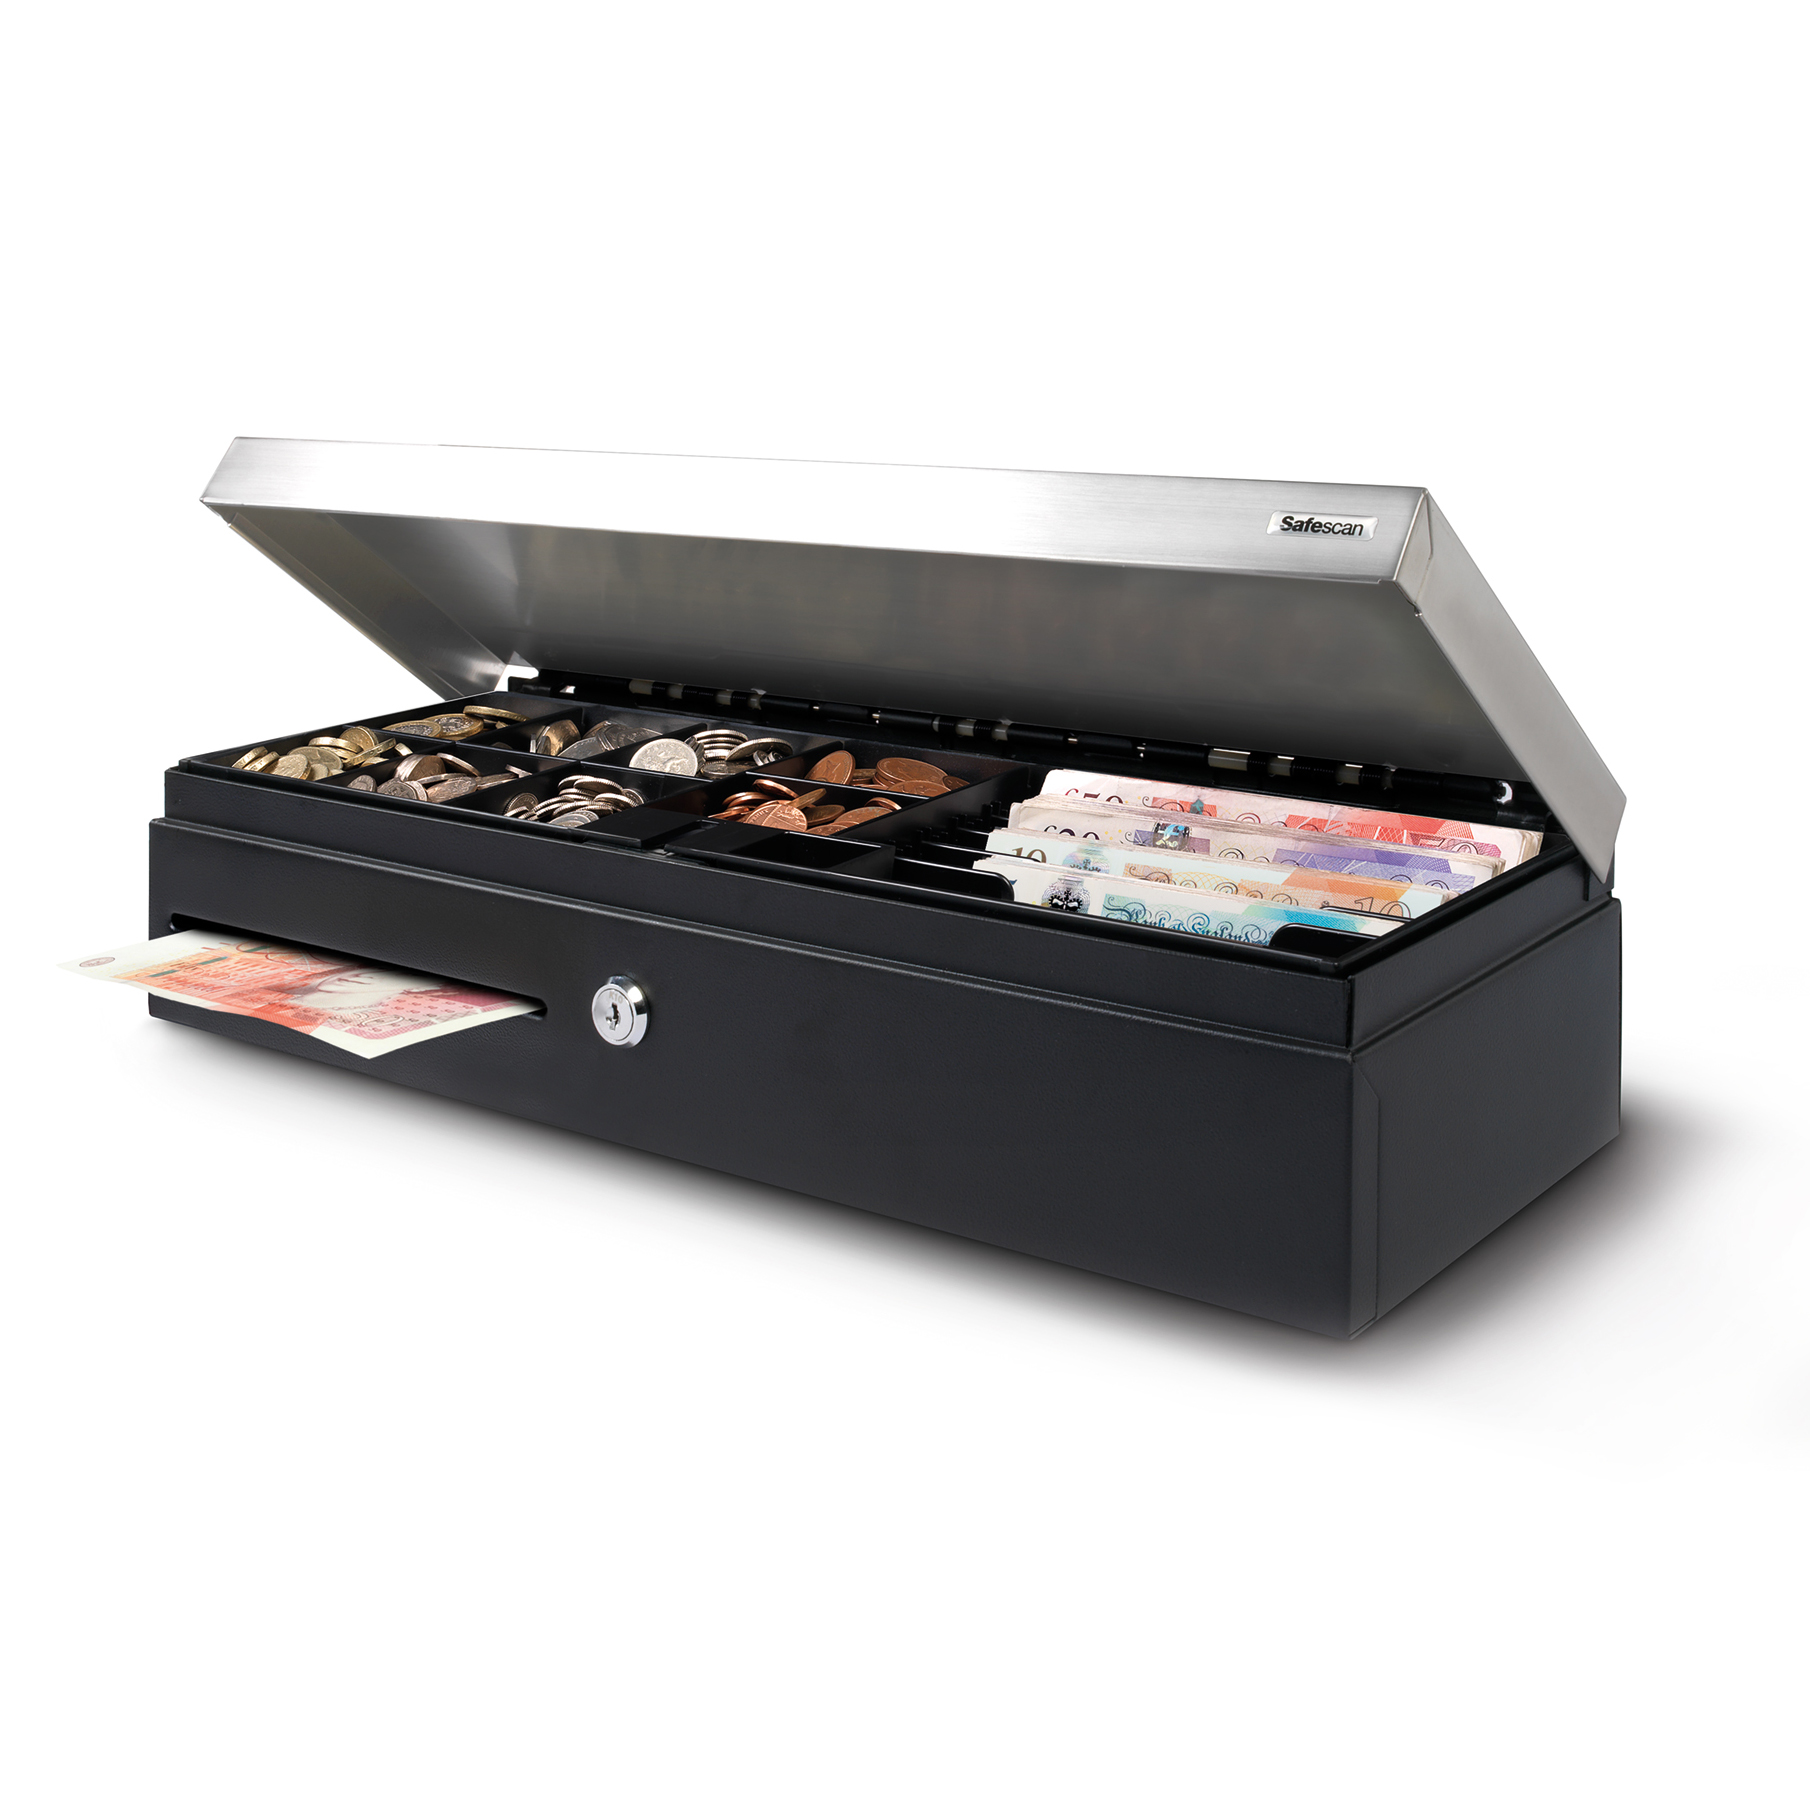 Safescan SD-4617S Cash Drawer Flip Top Standard Use 4.3kg L460xW170xH100m Black/Silver Ref 132-0498